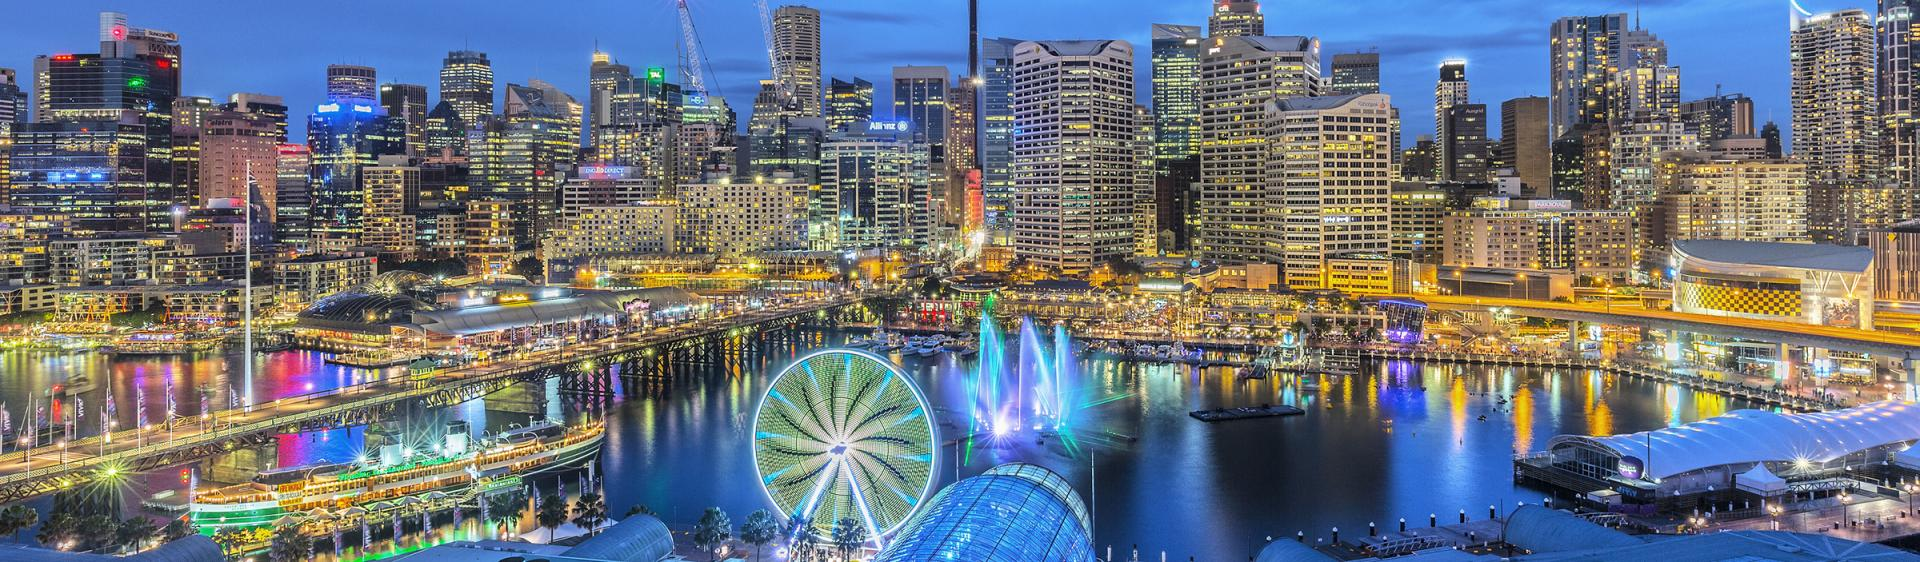 Whats on in Darling Harbour?